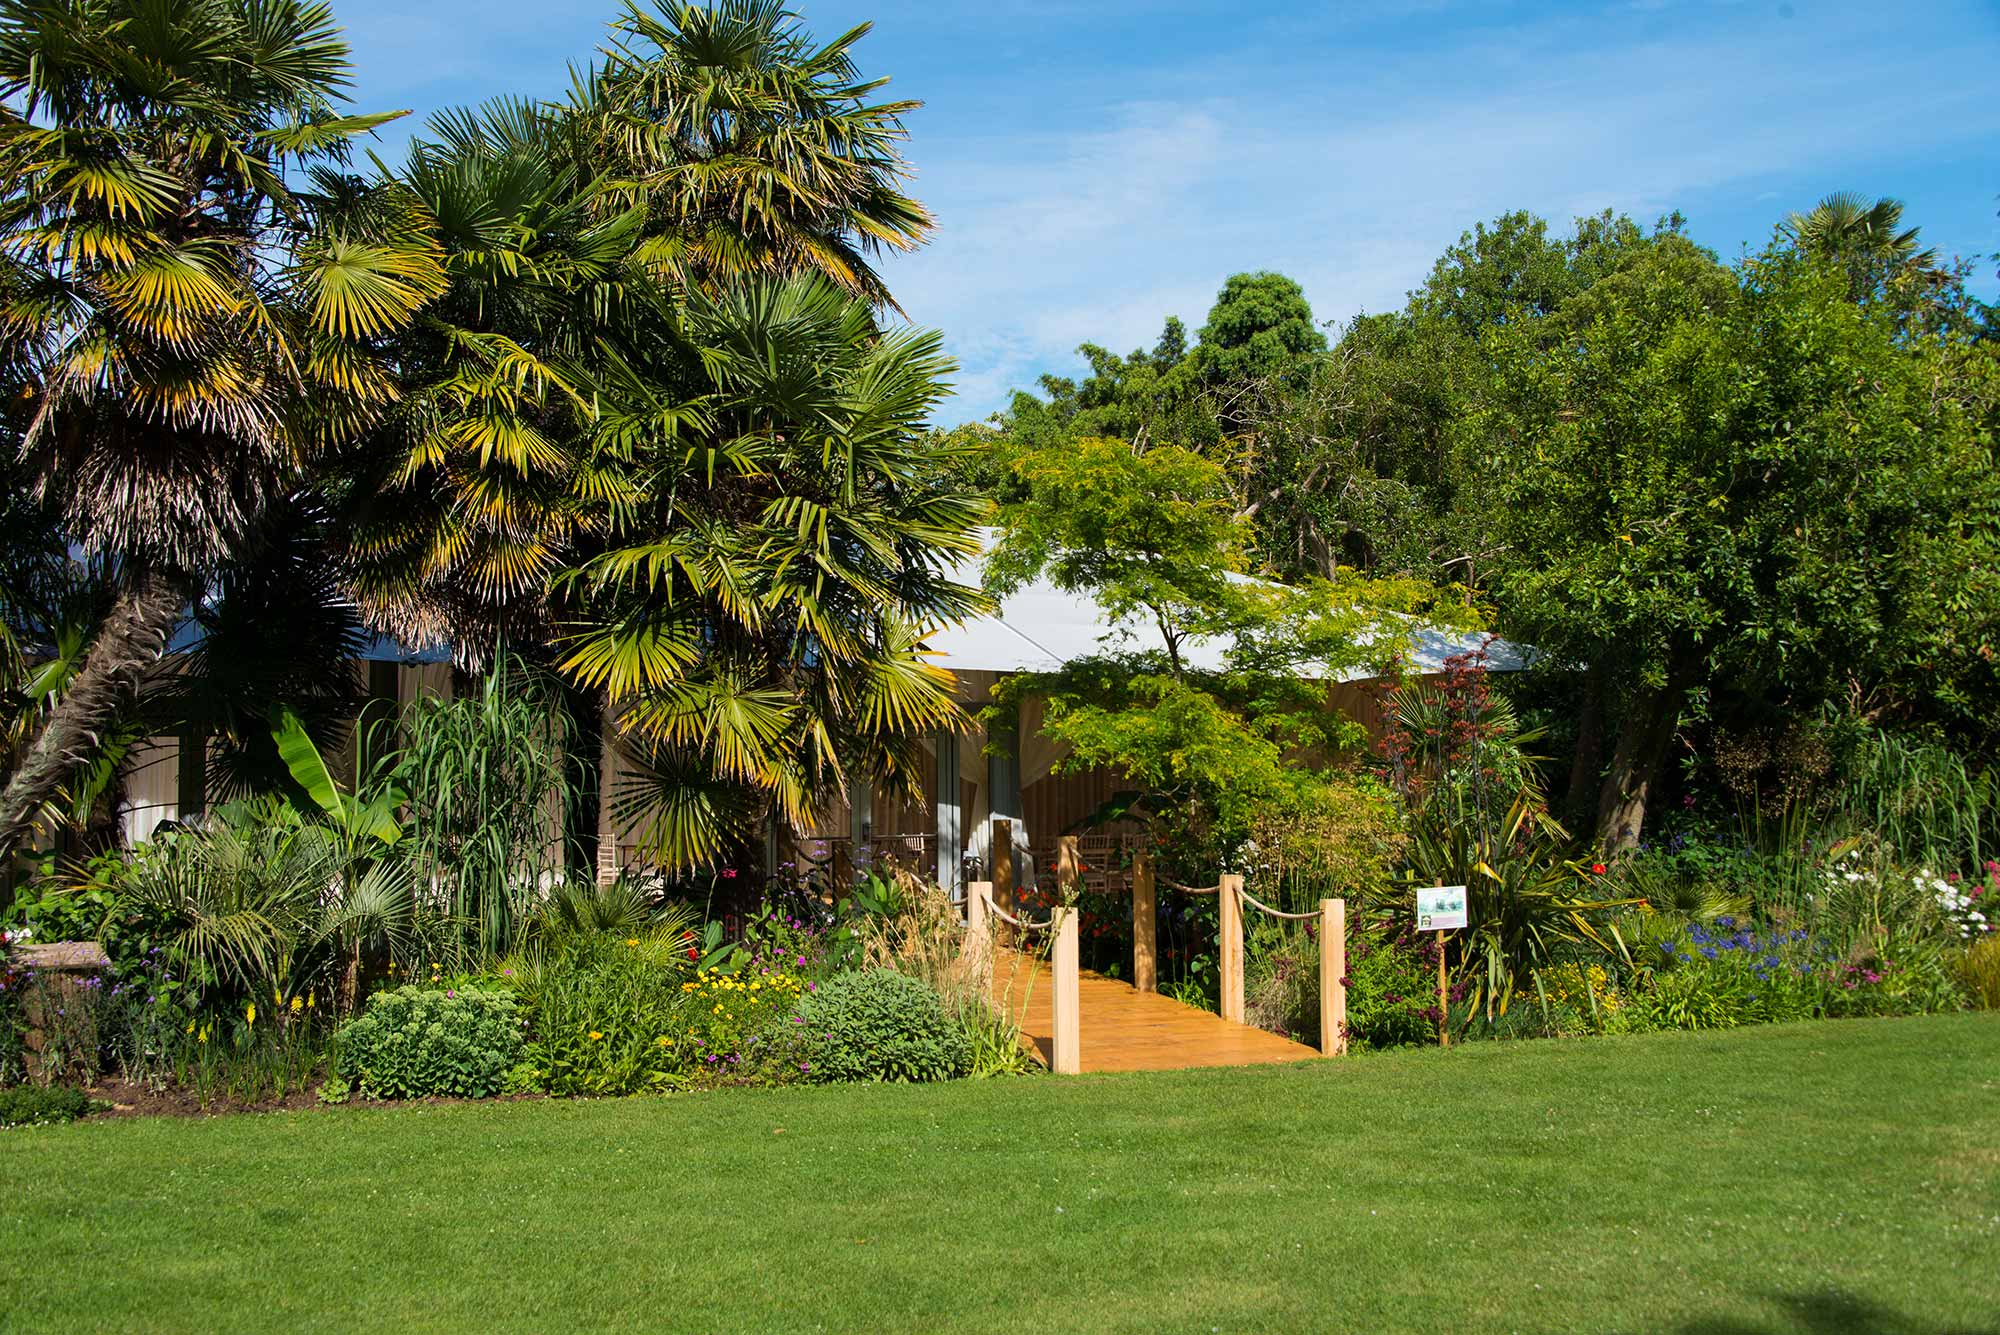 New Wedding and function Pavilion at Abbotsbury Subtropical Gardens